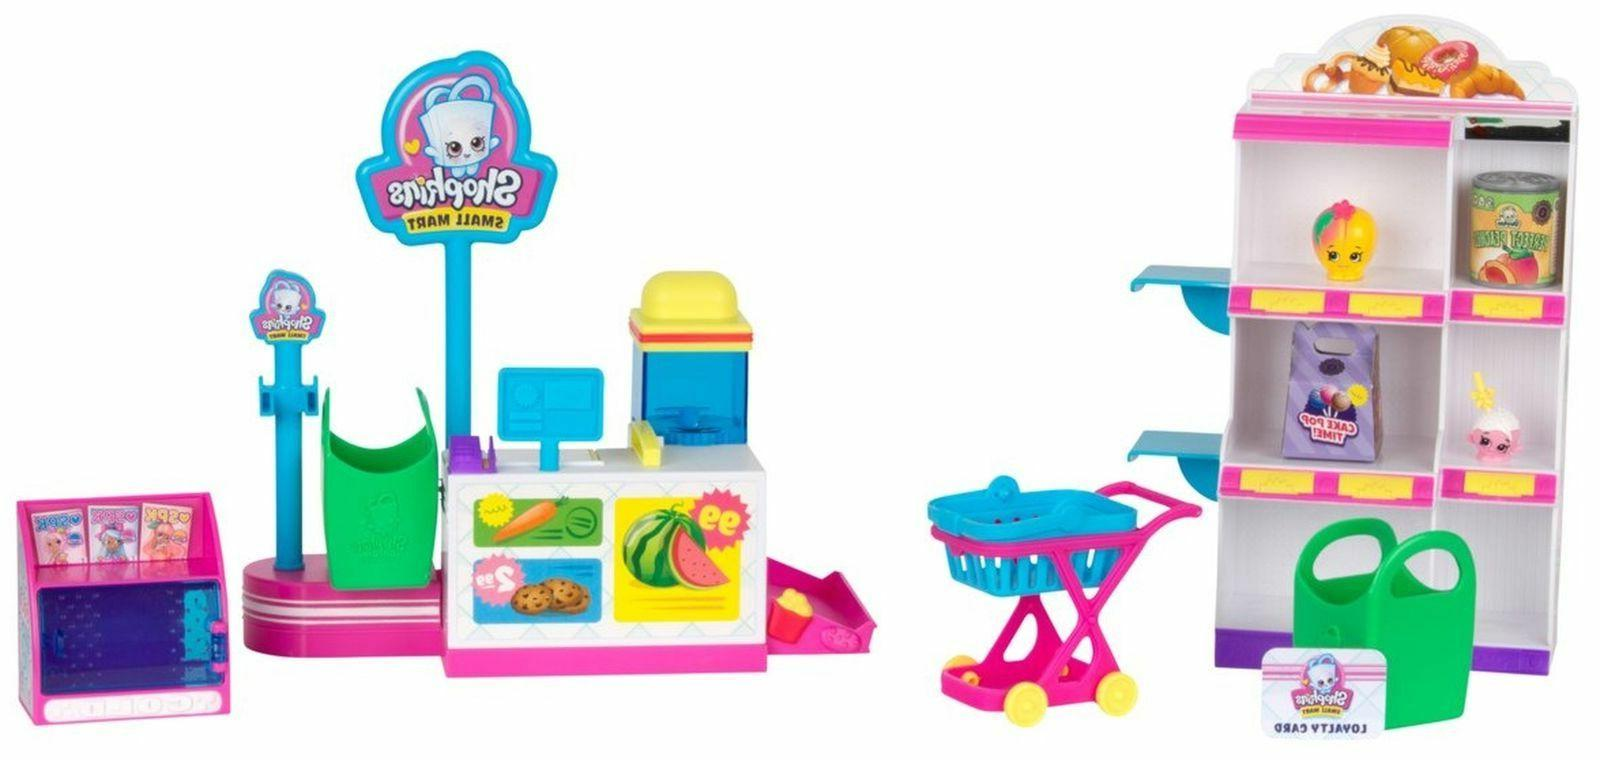 small mart playset childrens toy 11a